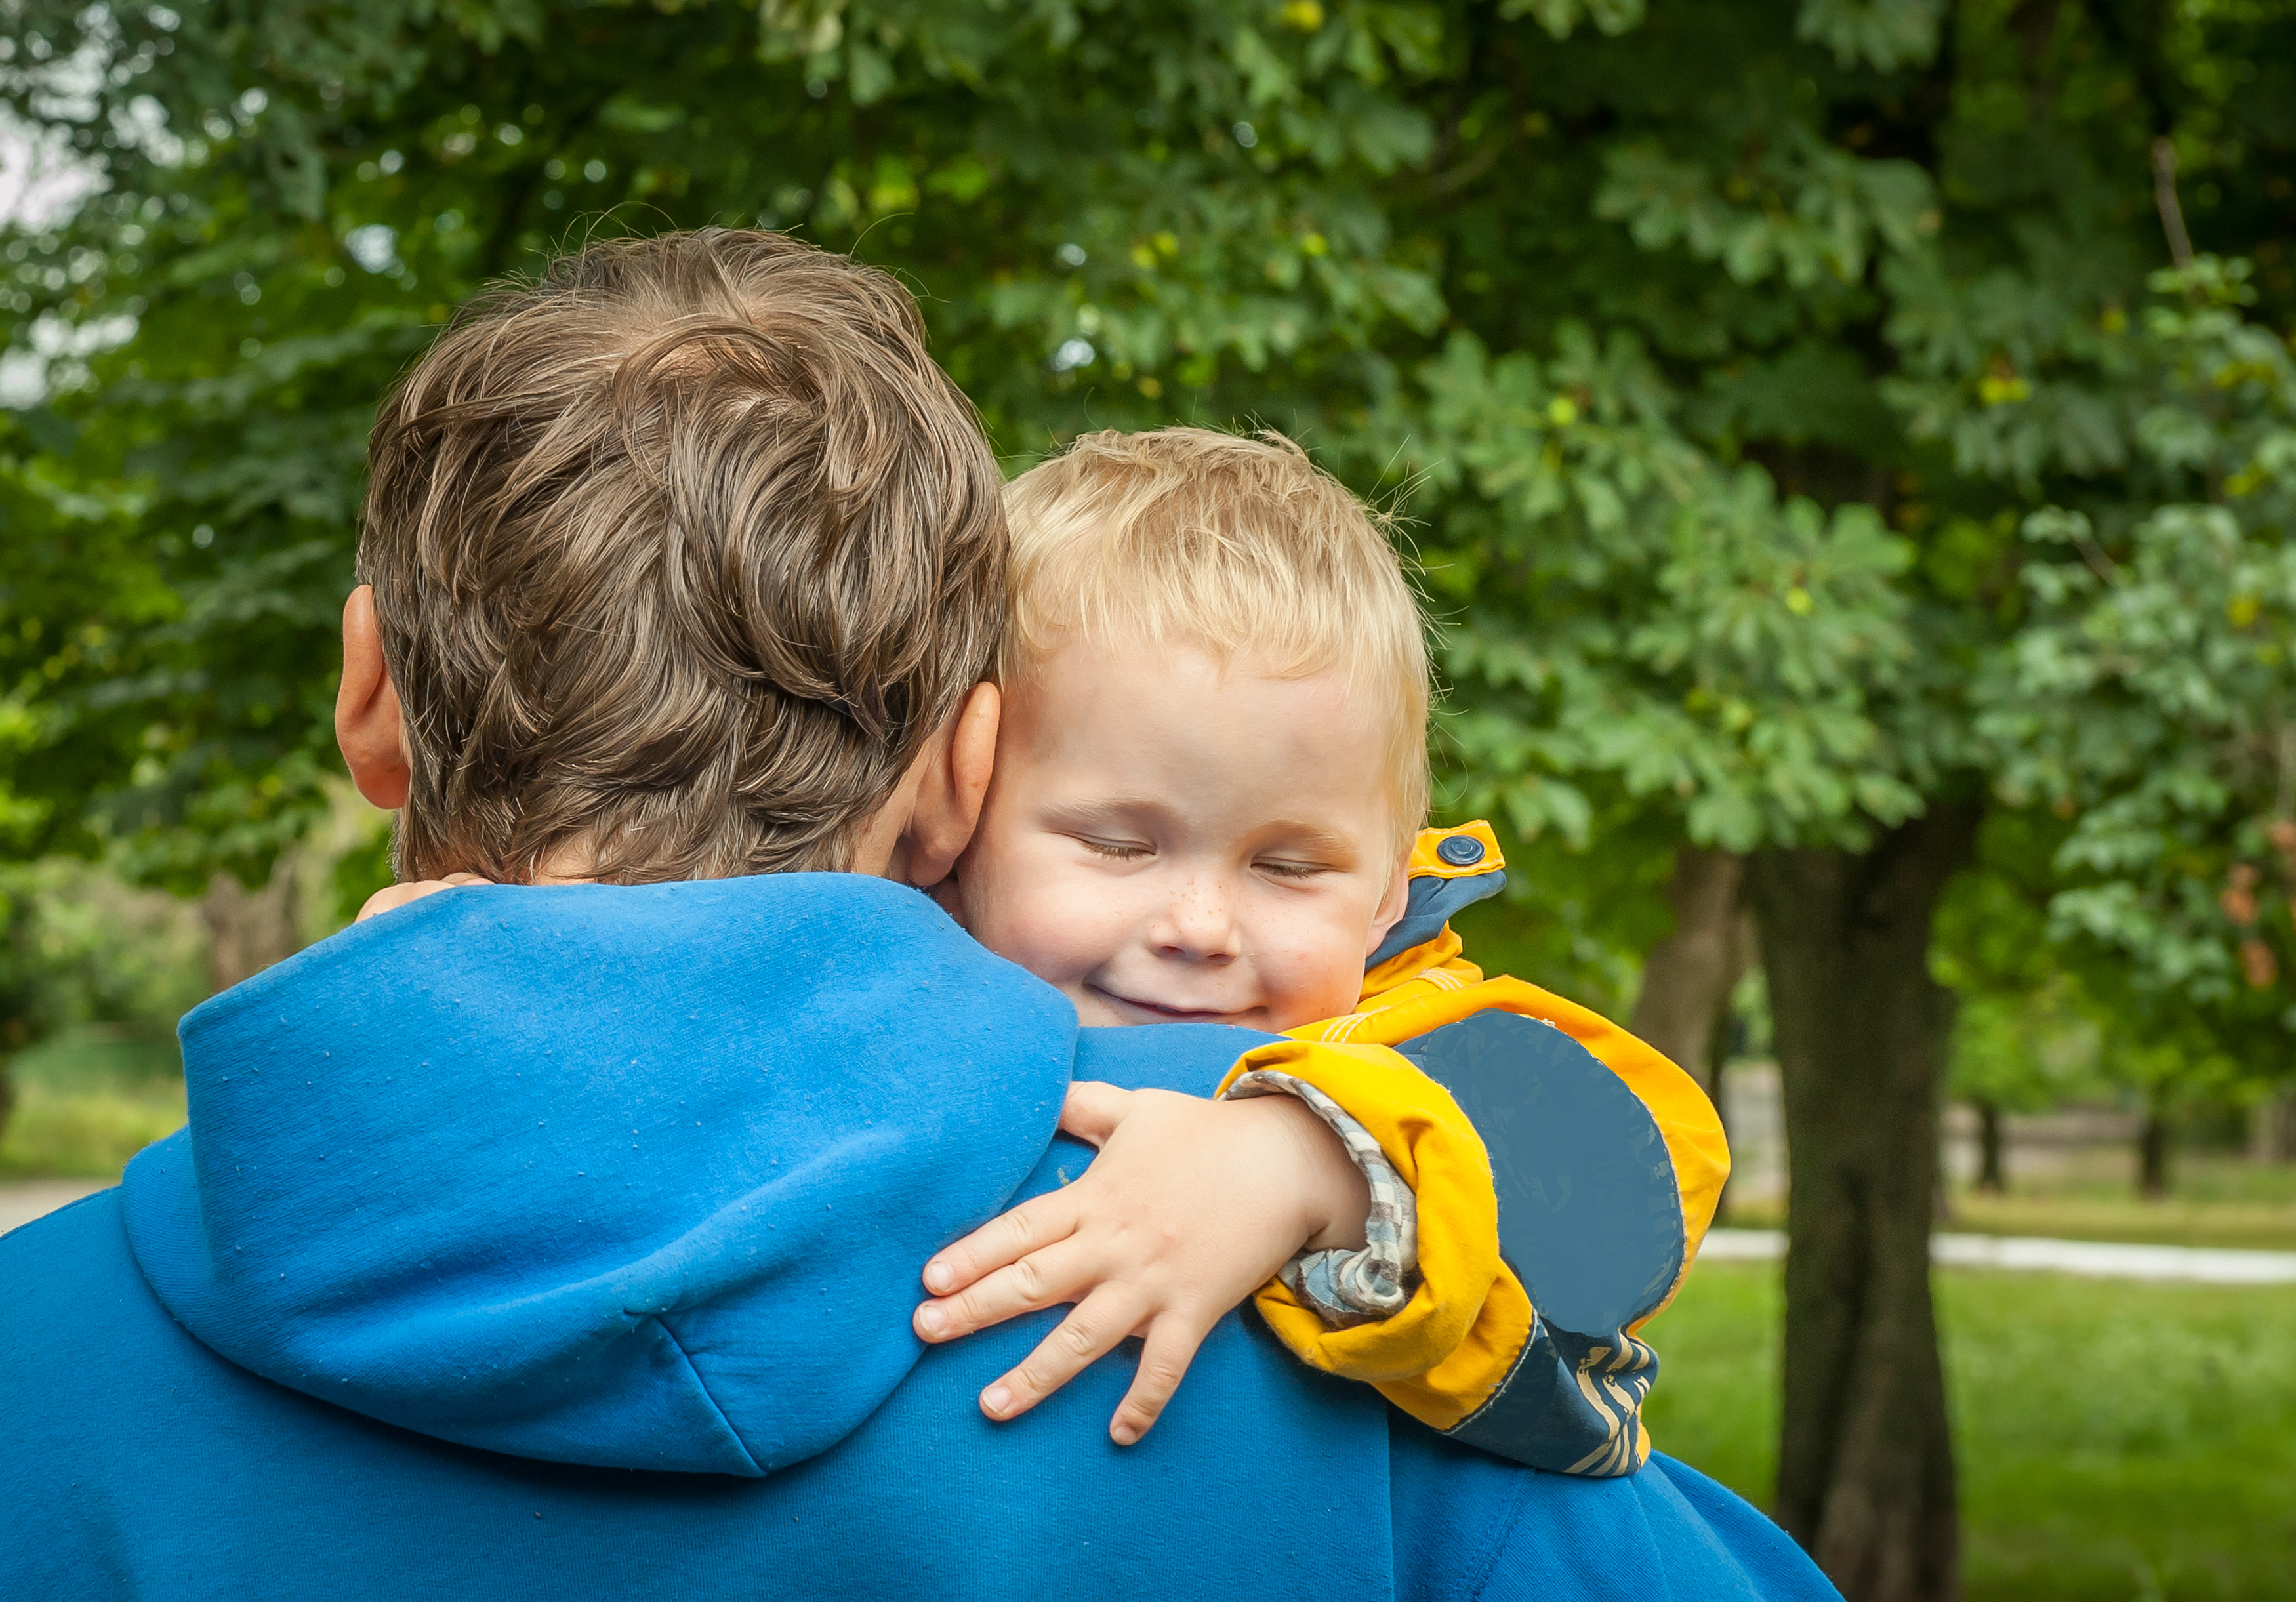 Kansas Child Custody Laws, Child Custody Laws in Kansas